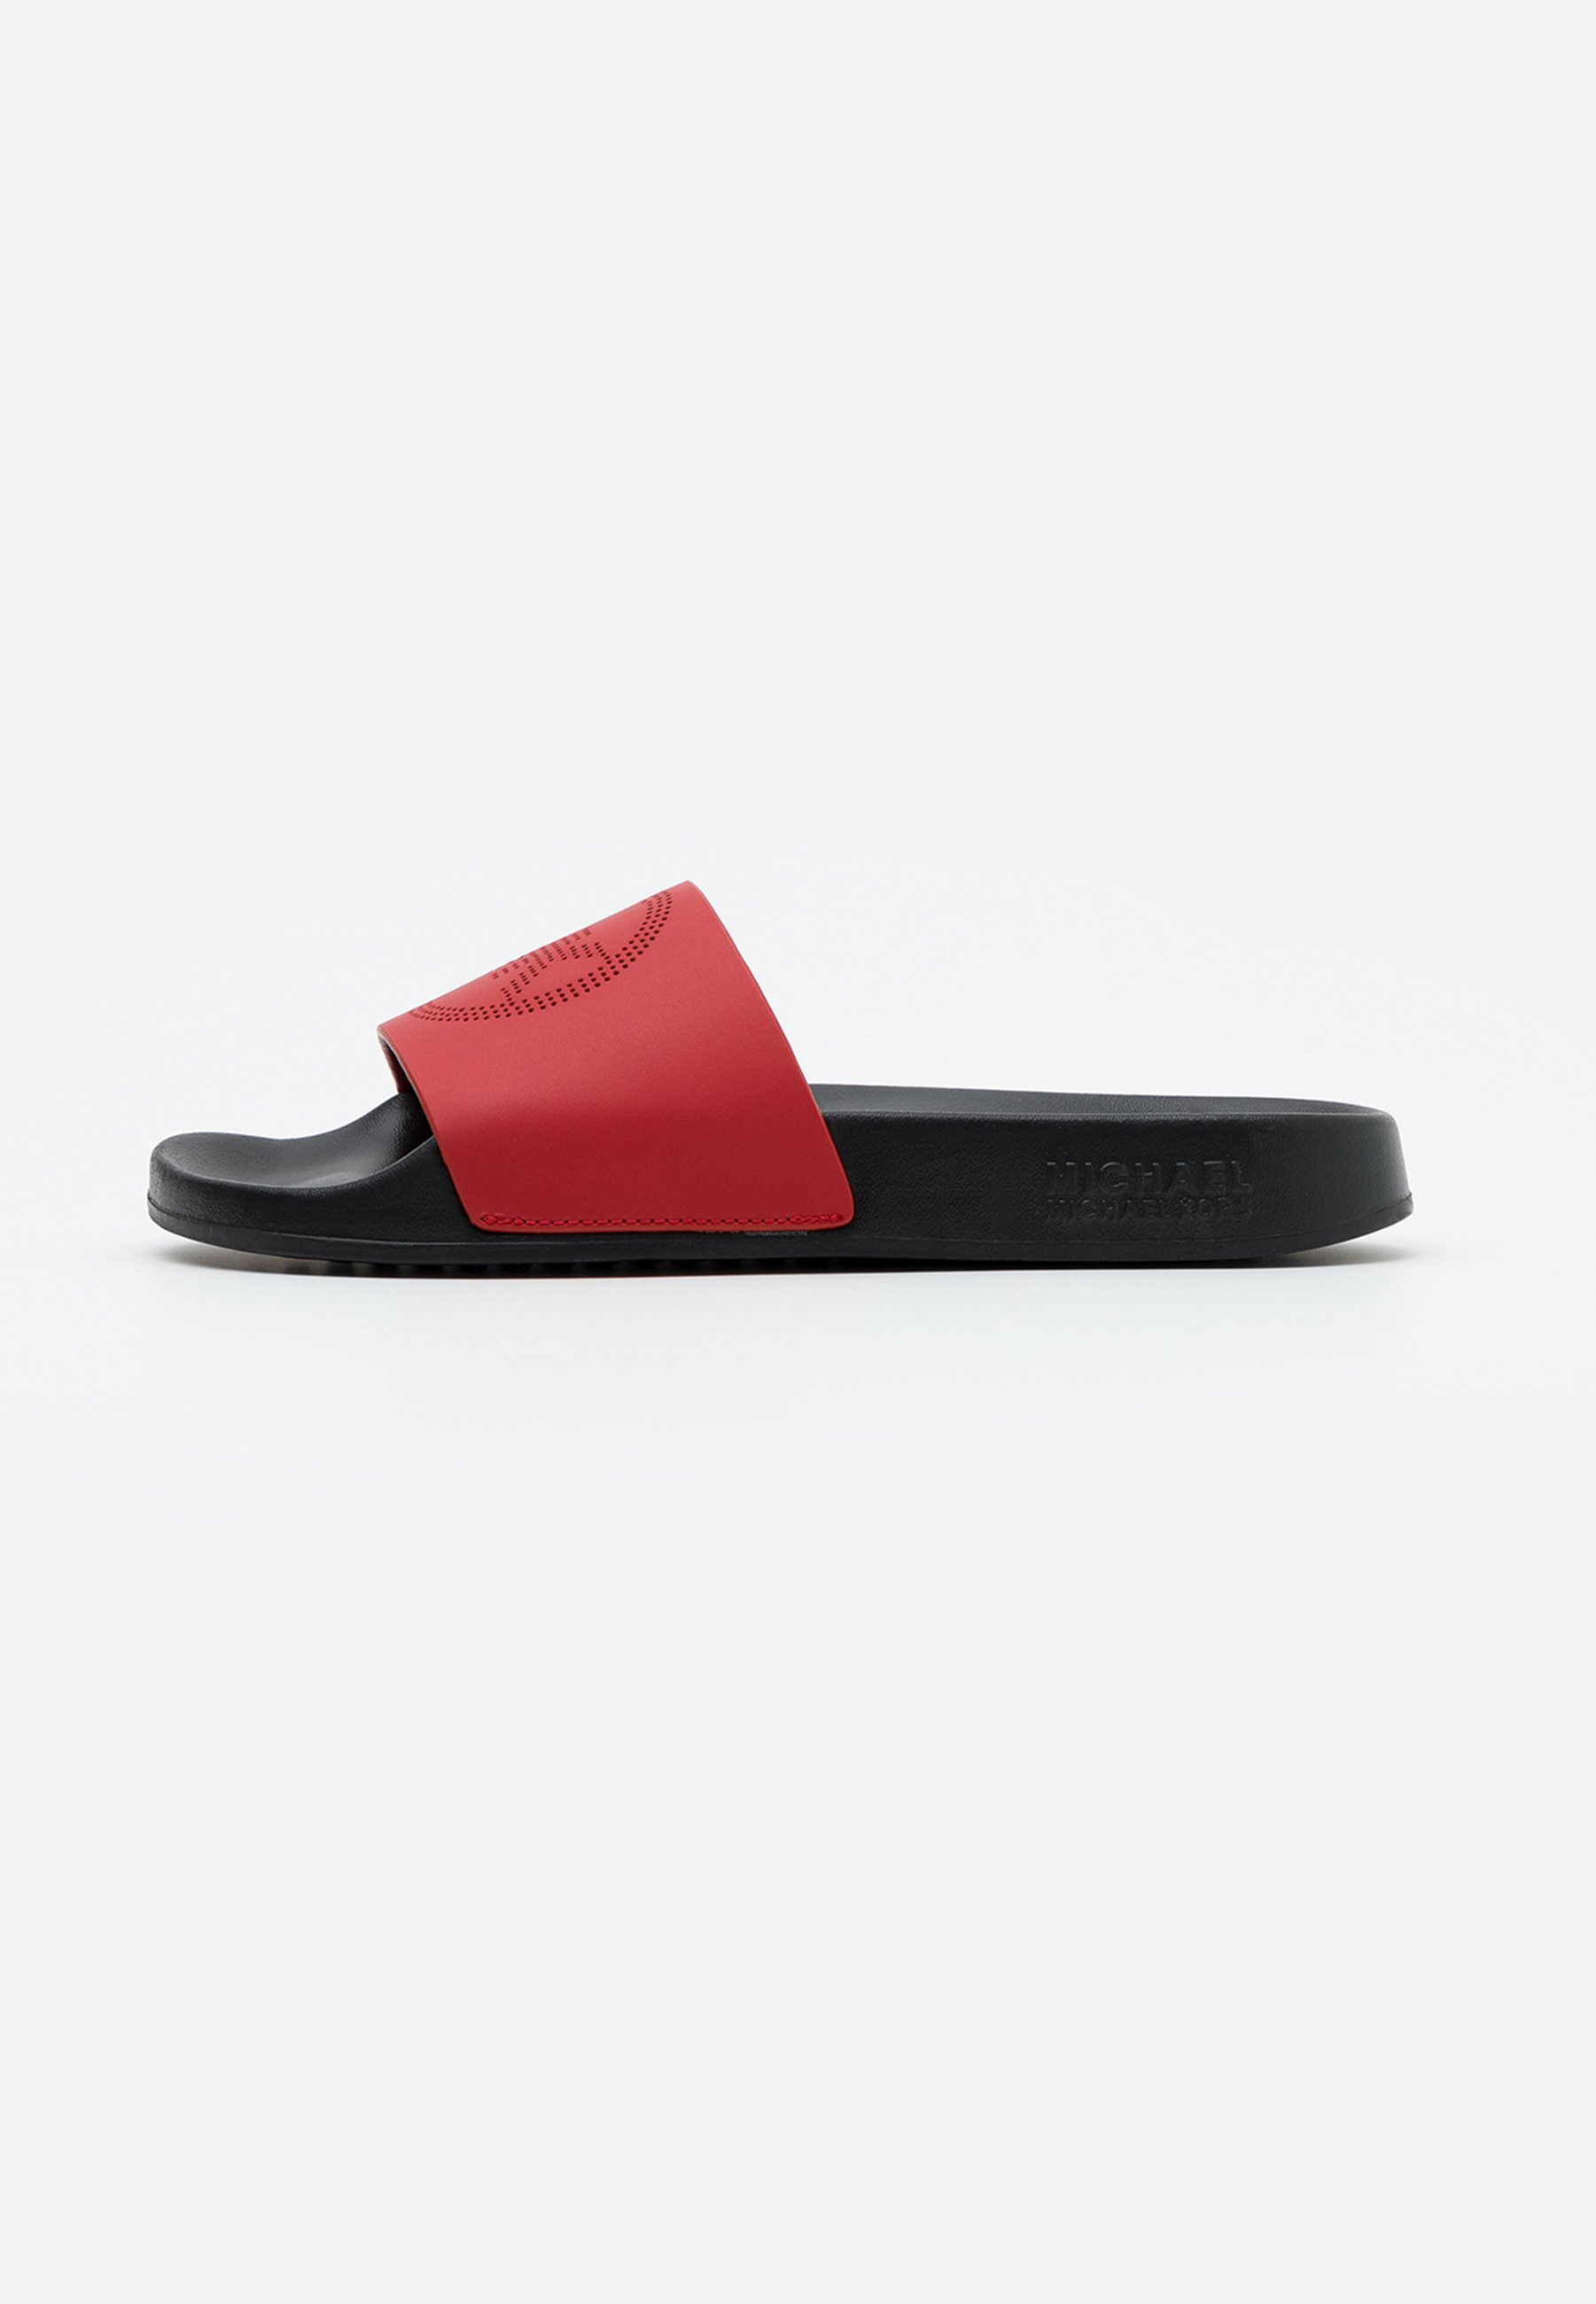 Michael Kors Gilmore Slide - Sandaler Bright Red